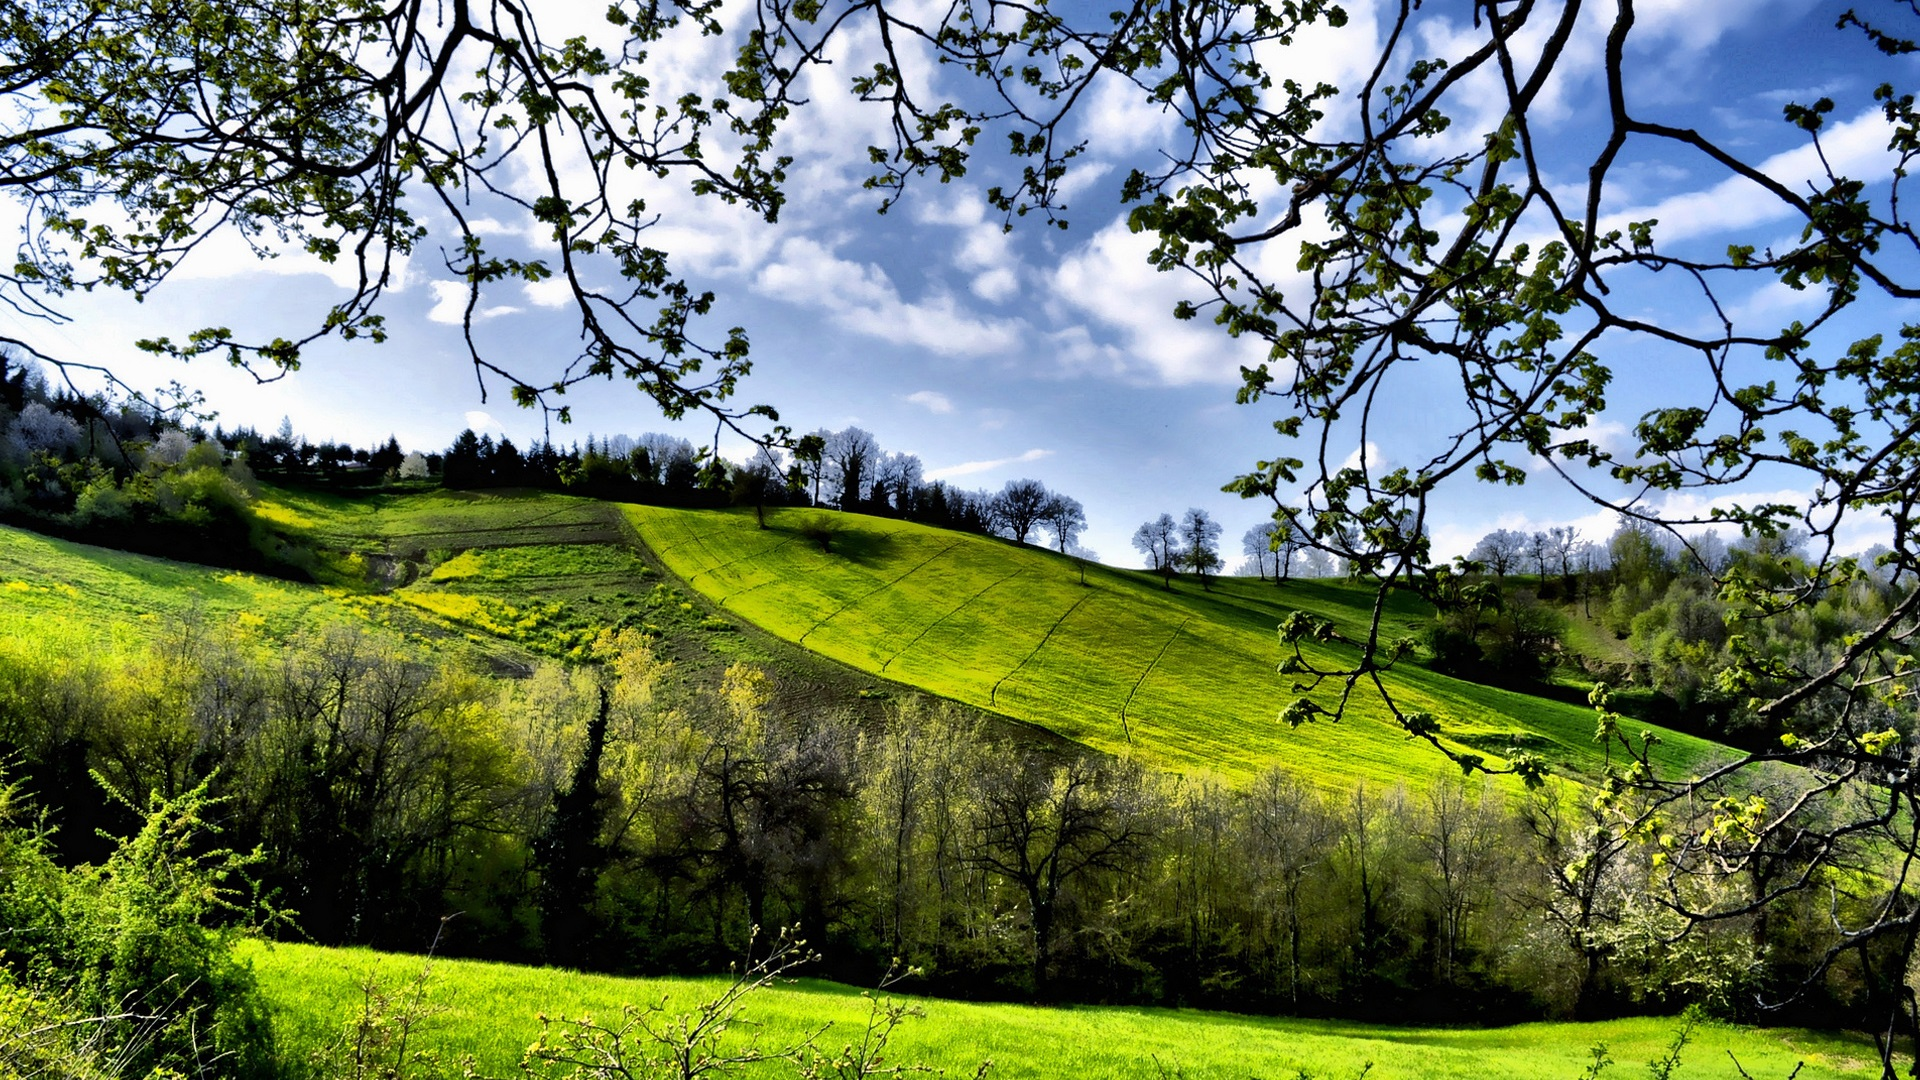 spring natural scenery hd - photo #20